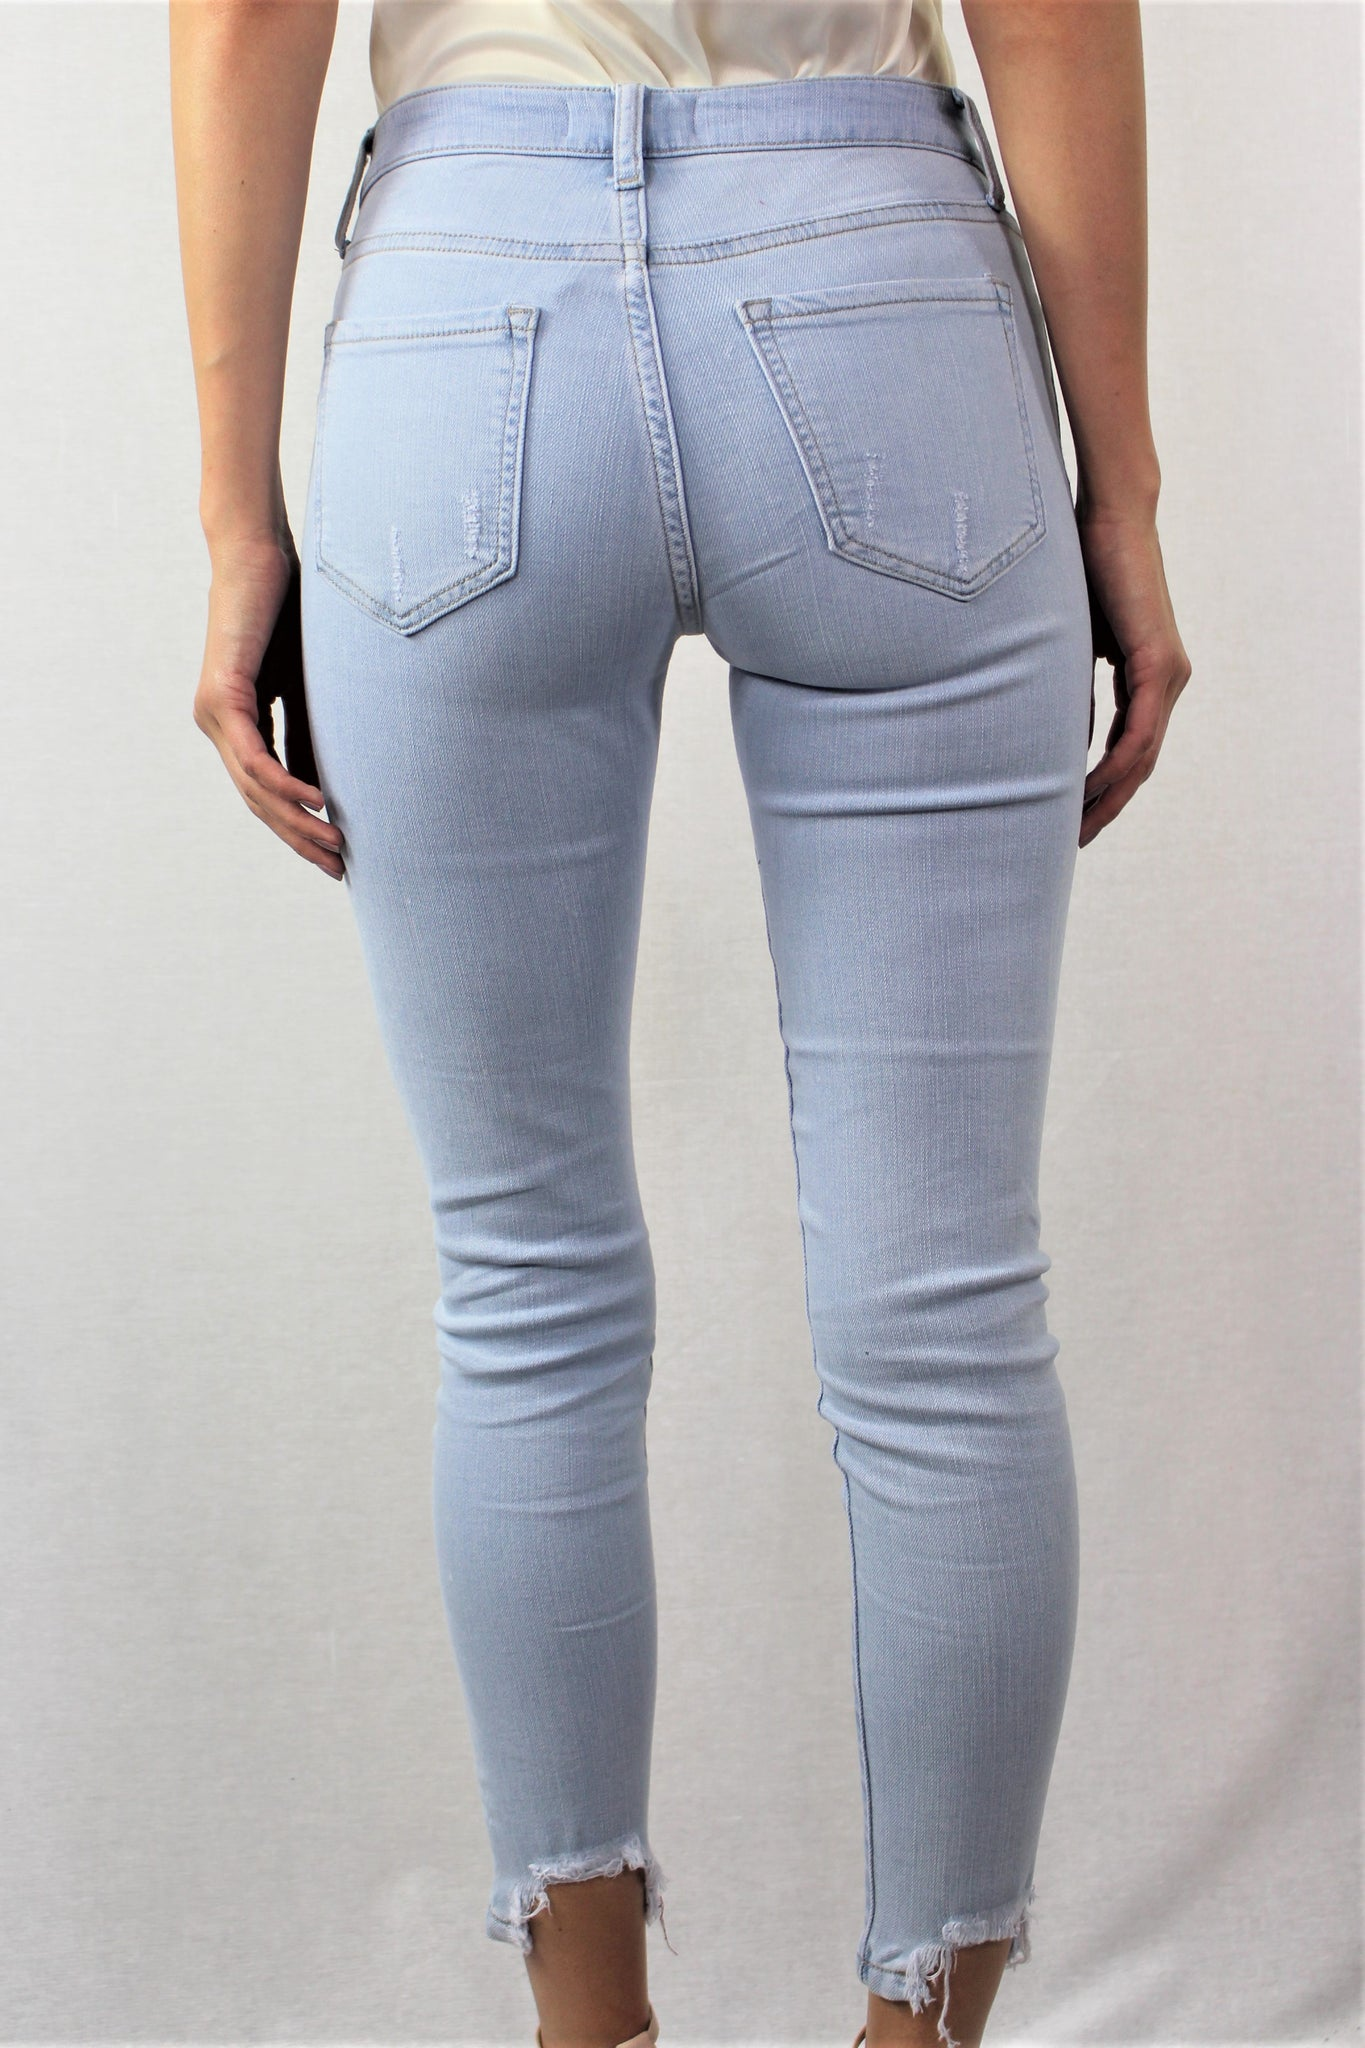 Light Skinny Jeans with Shredded Rips